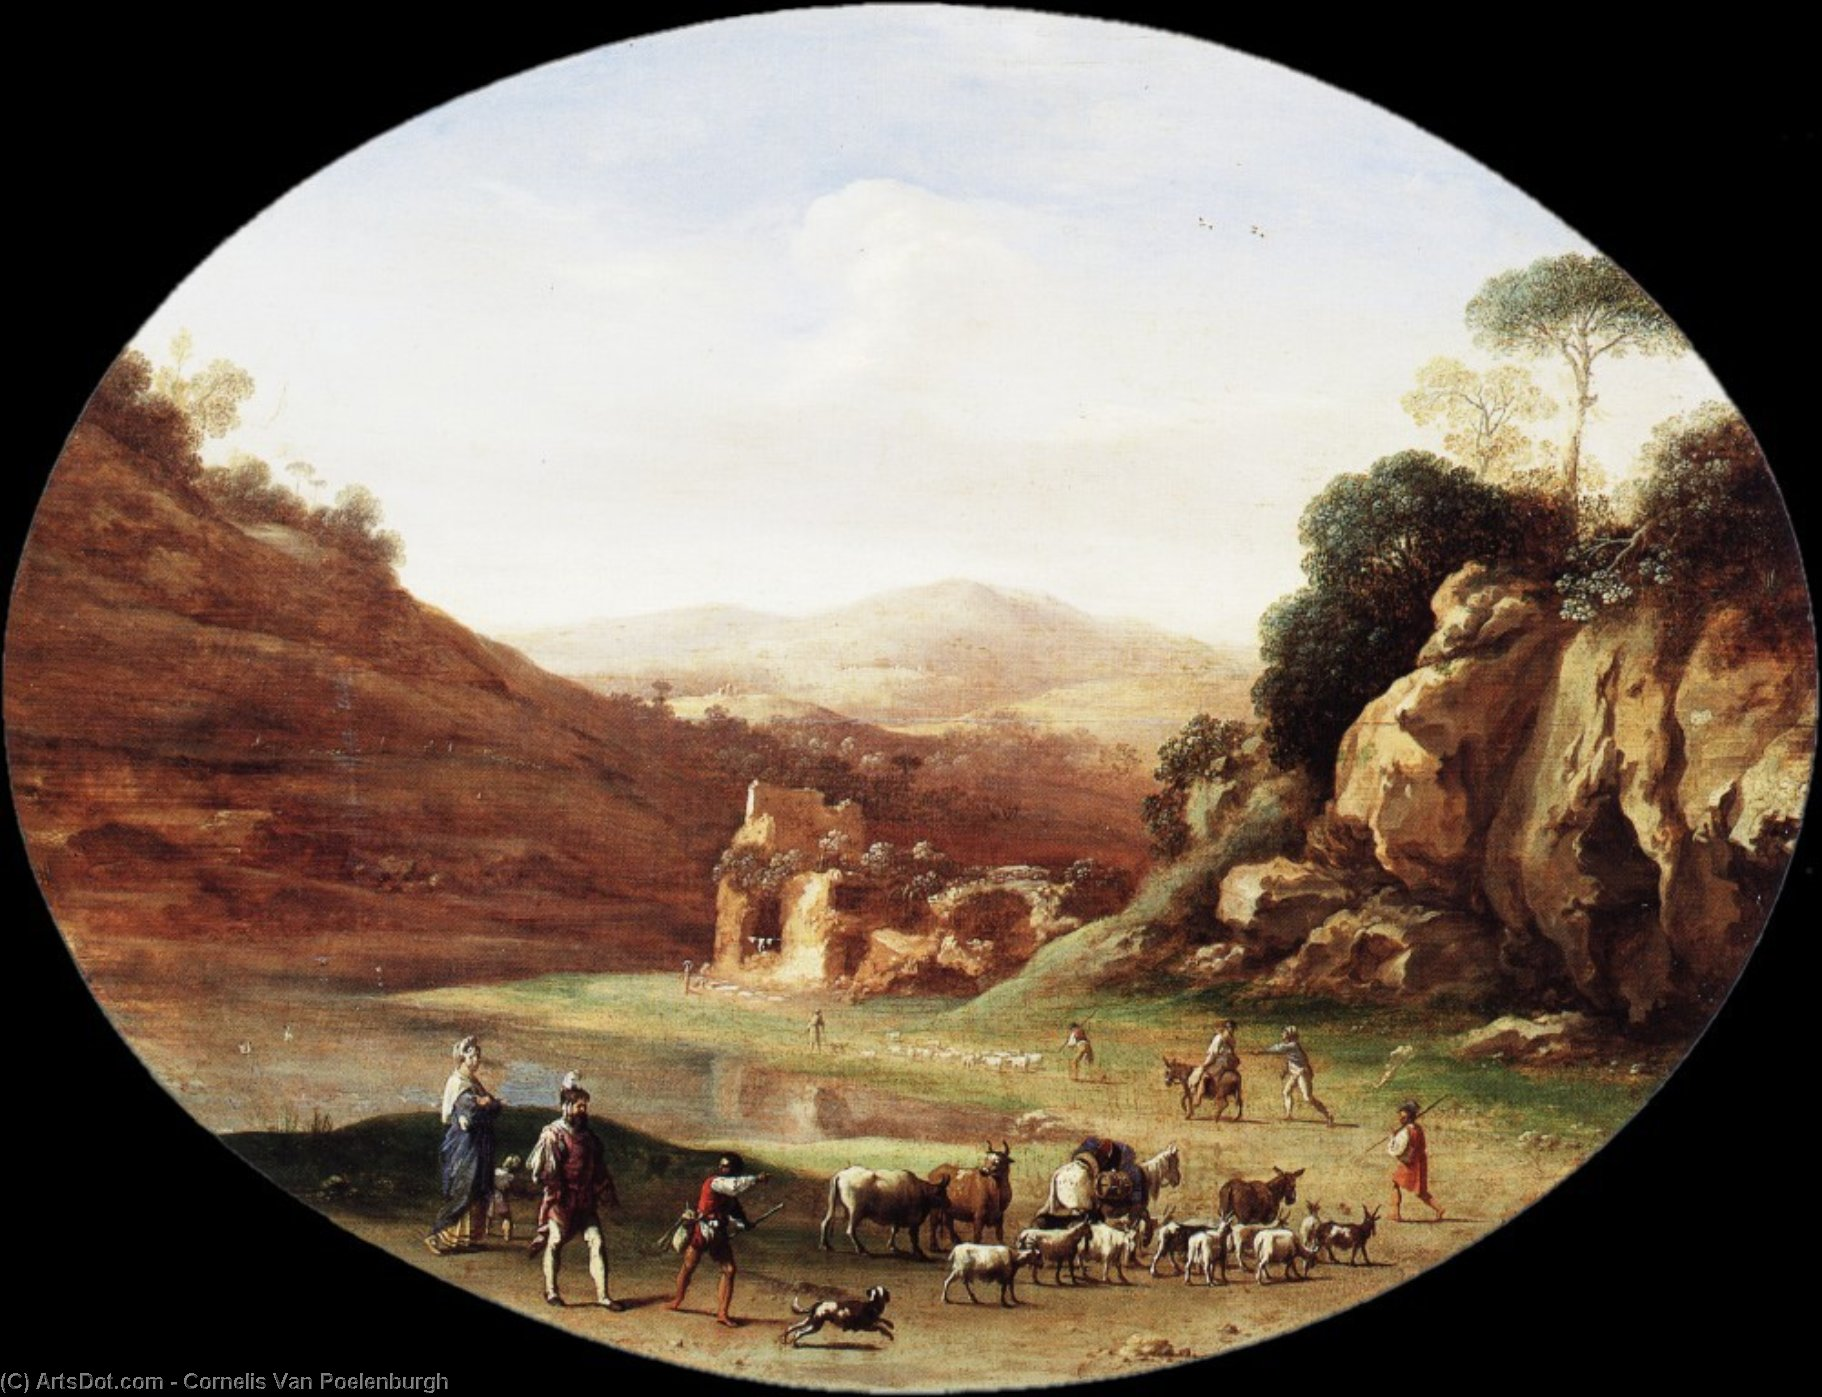 Valley with Ruins and Figures, Drawing by Cornelis Van Poelenburgh (1595-1667, Netherlands)